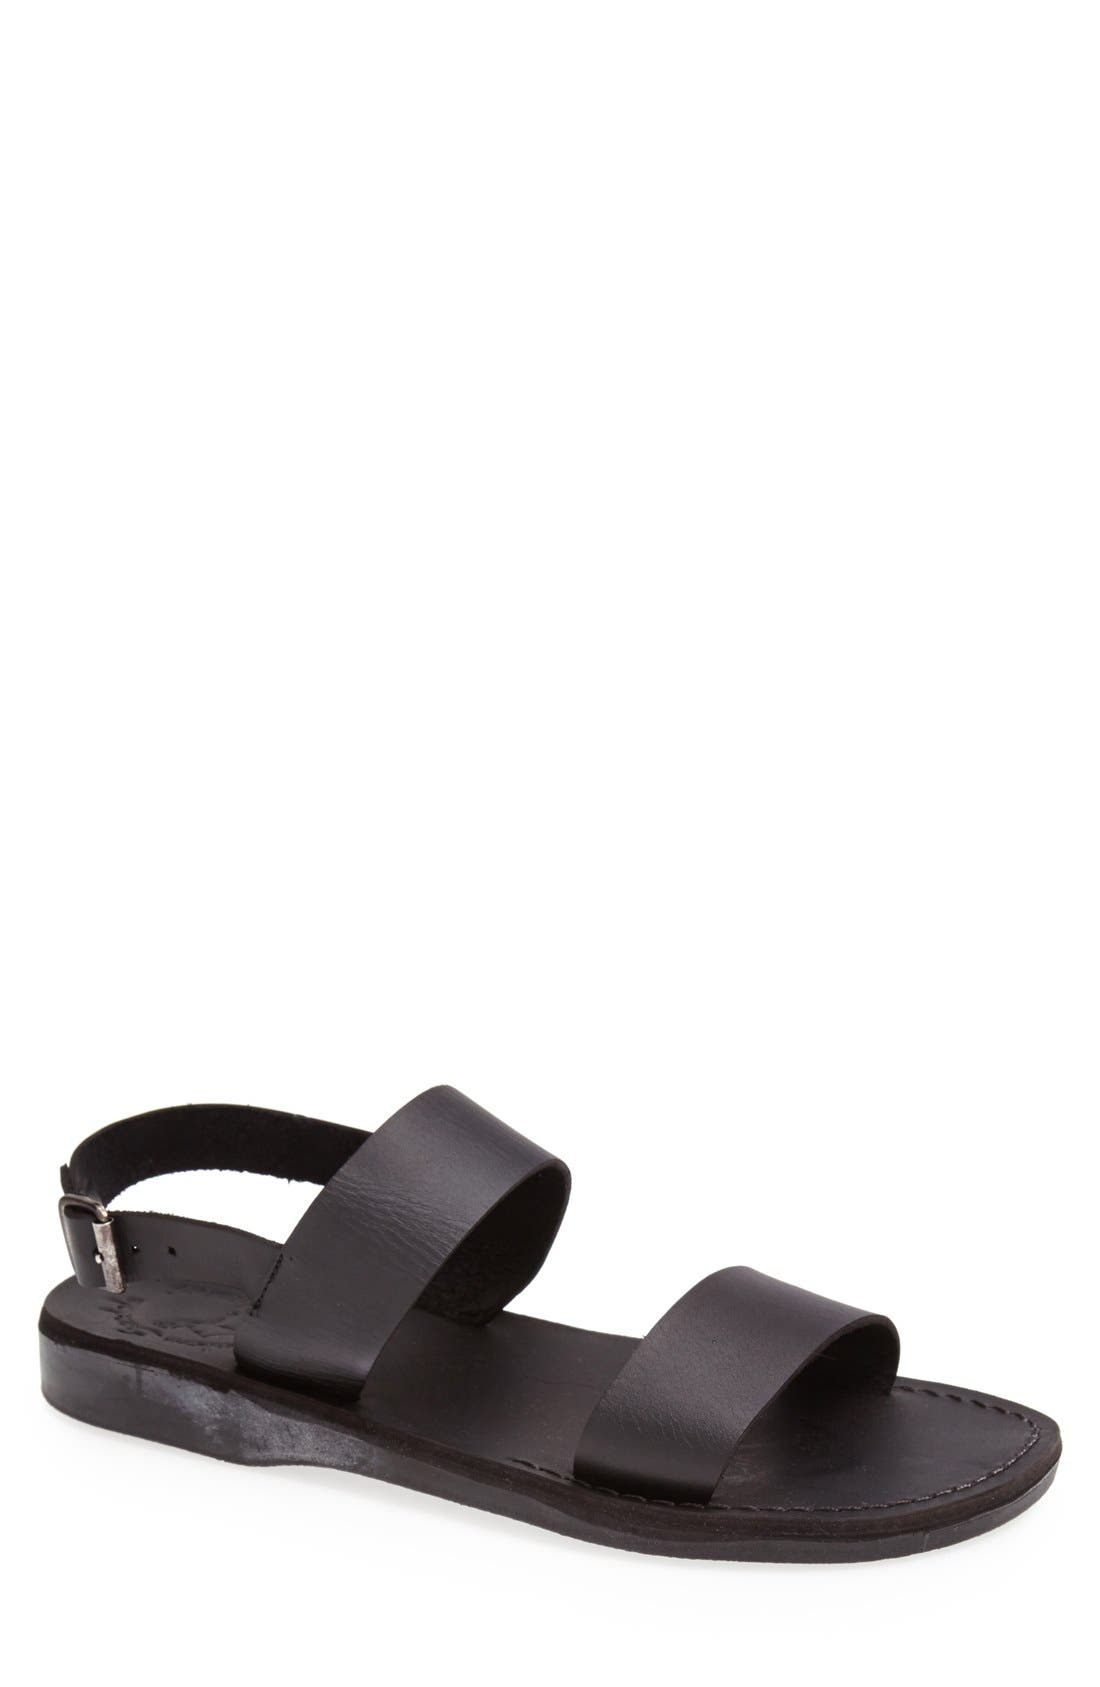 'Golan' Leather Sandal,                             Main thumbnail 1, color,                             Black